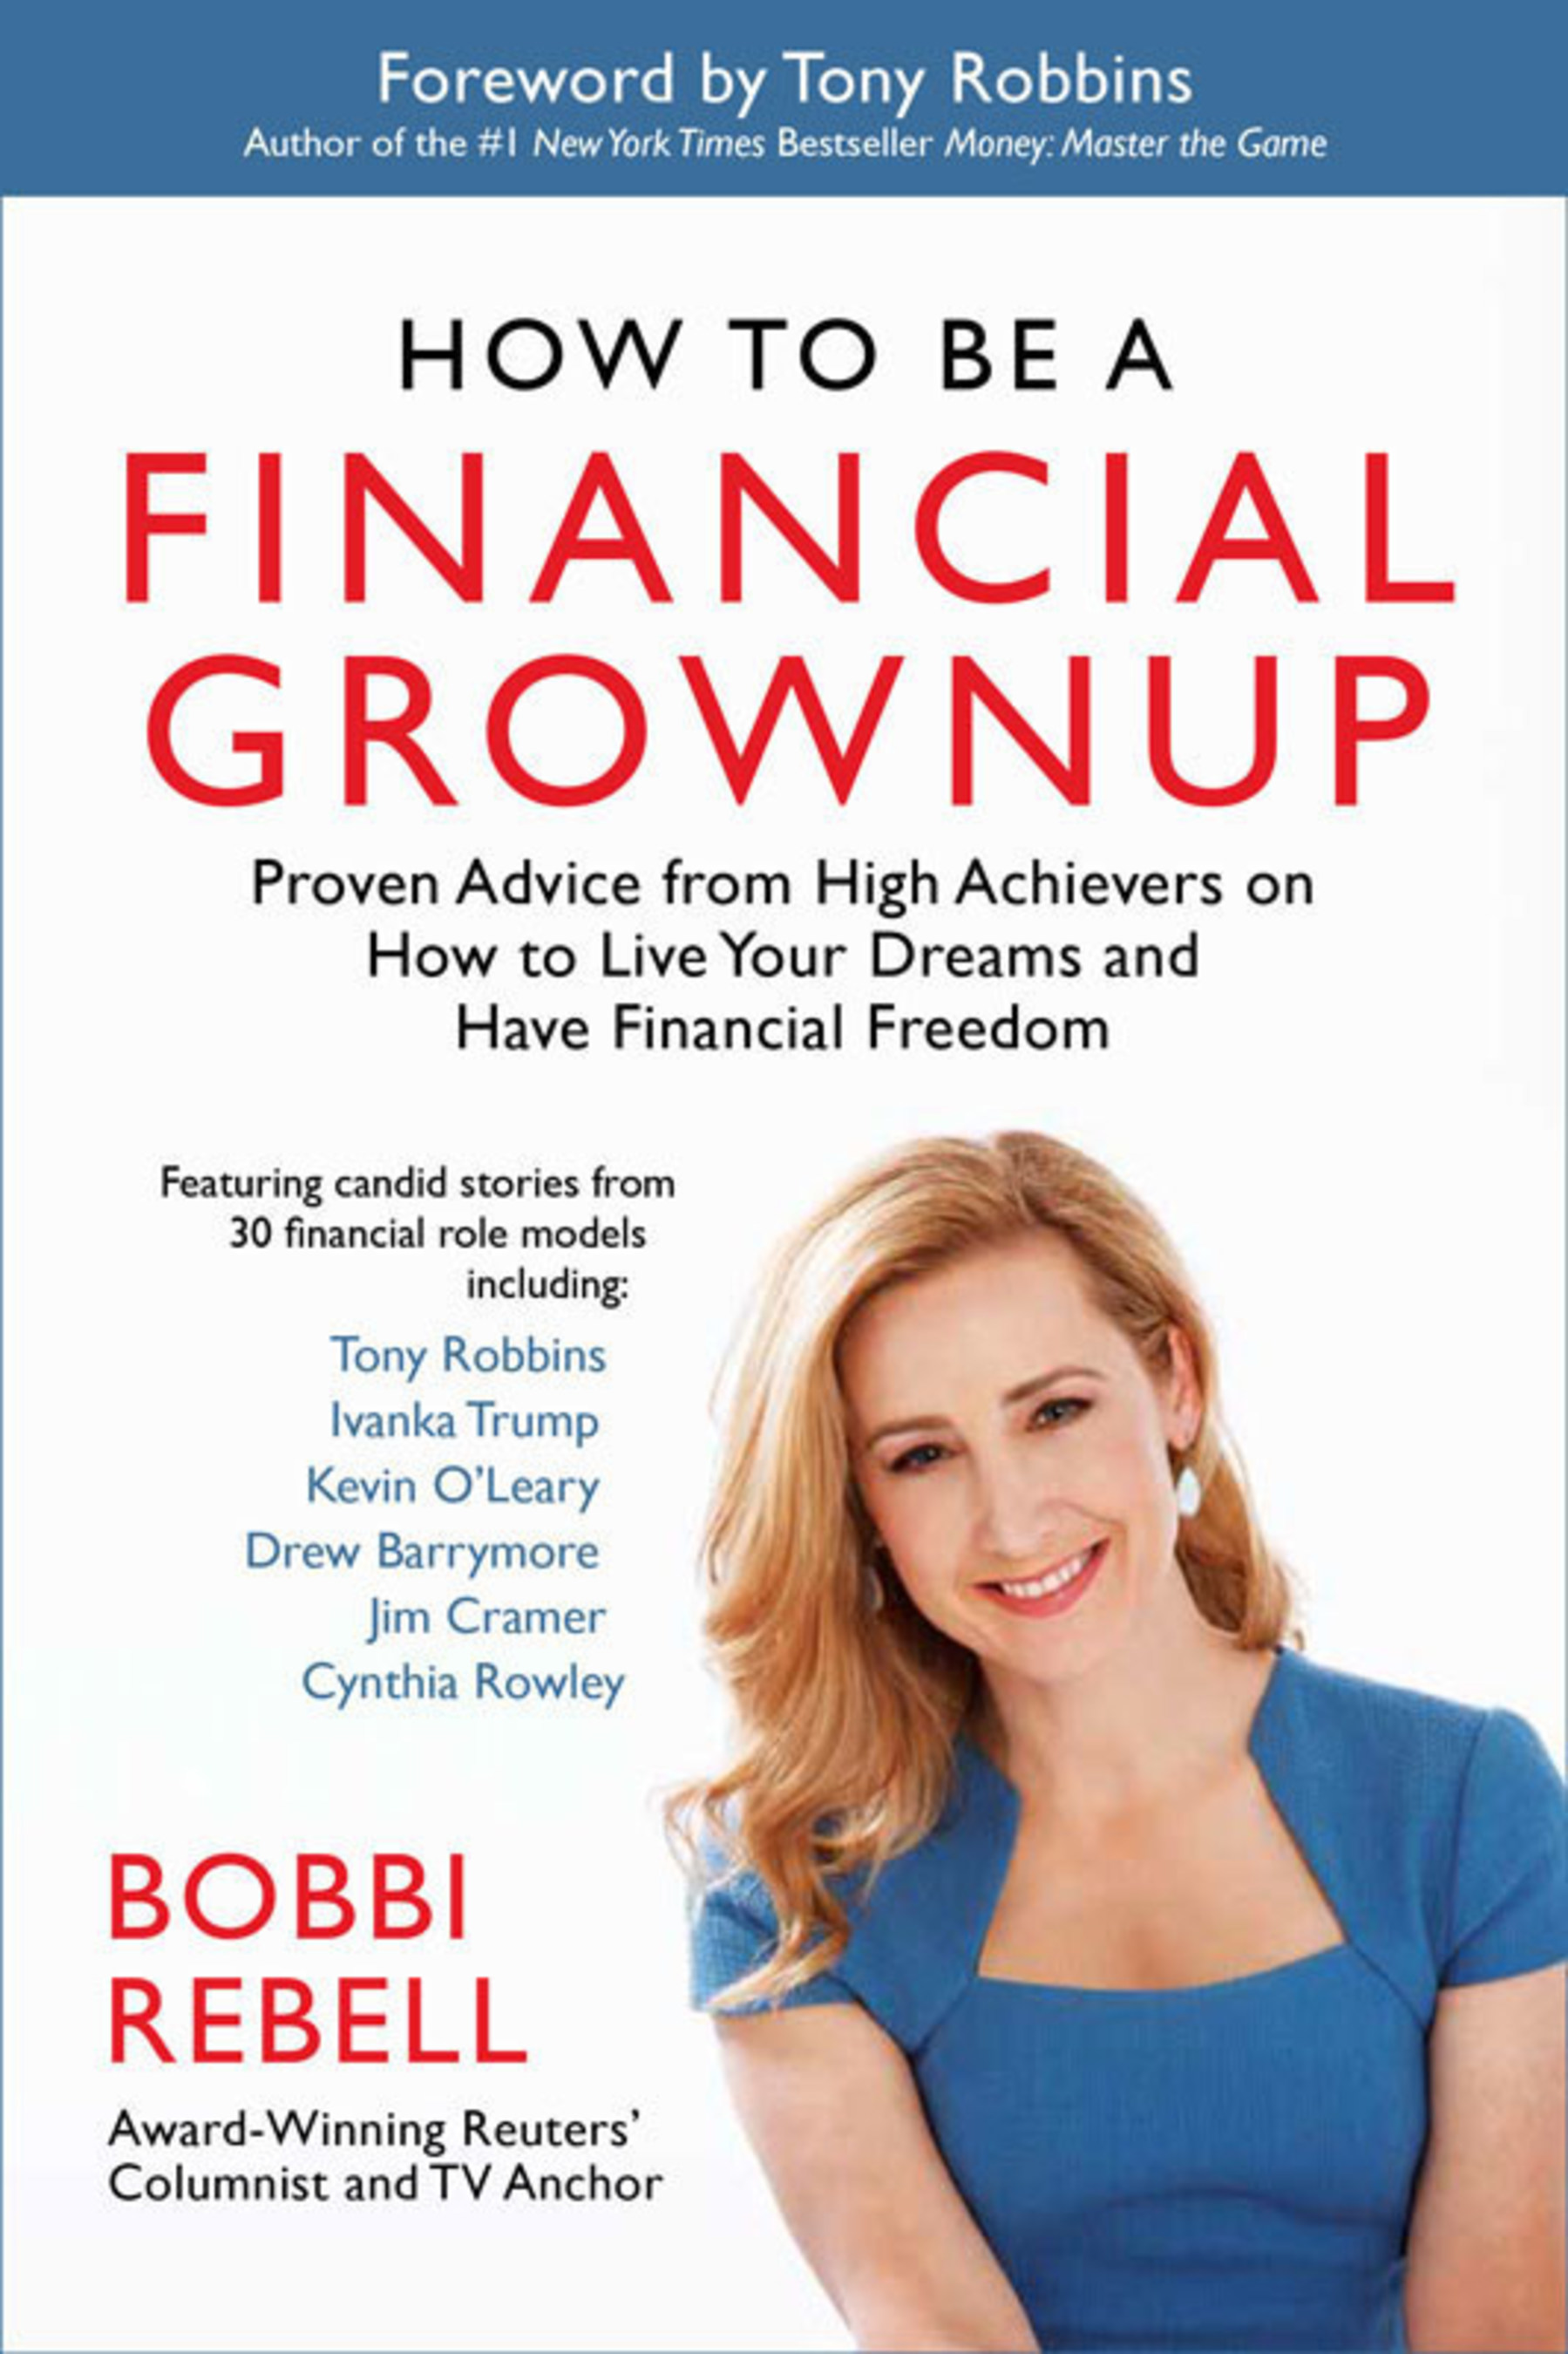 How to Be a Financial Grownup by Bobbi Rebell, Foreword by Tony Robbins